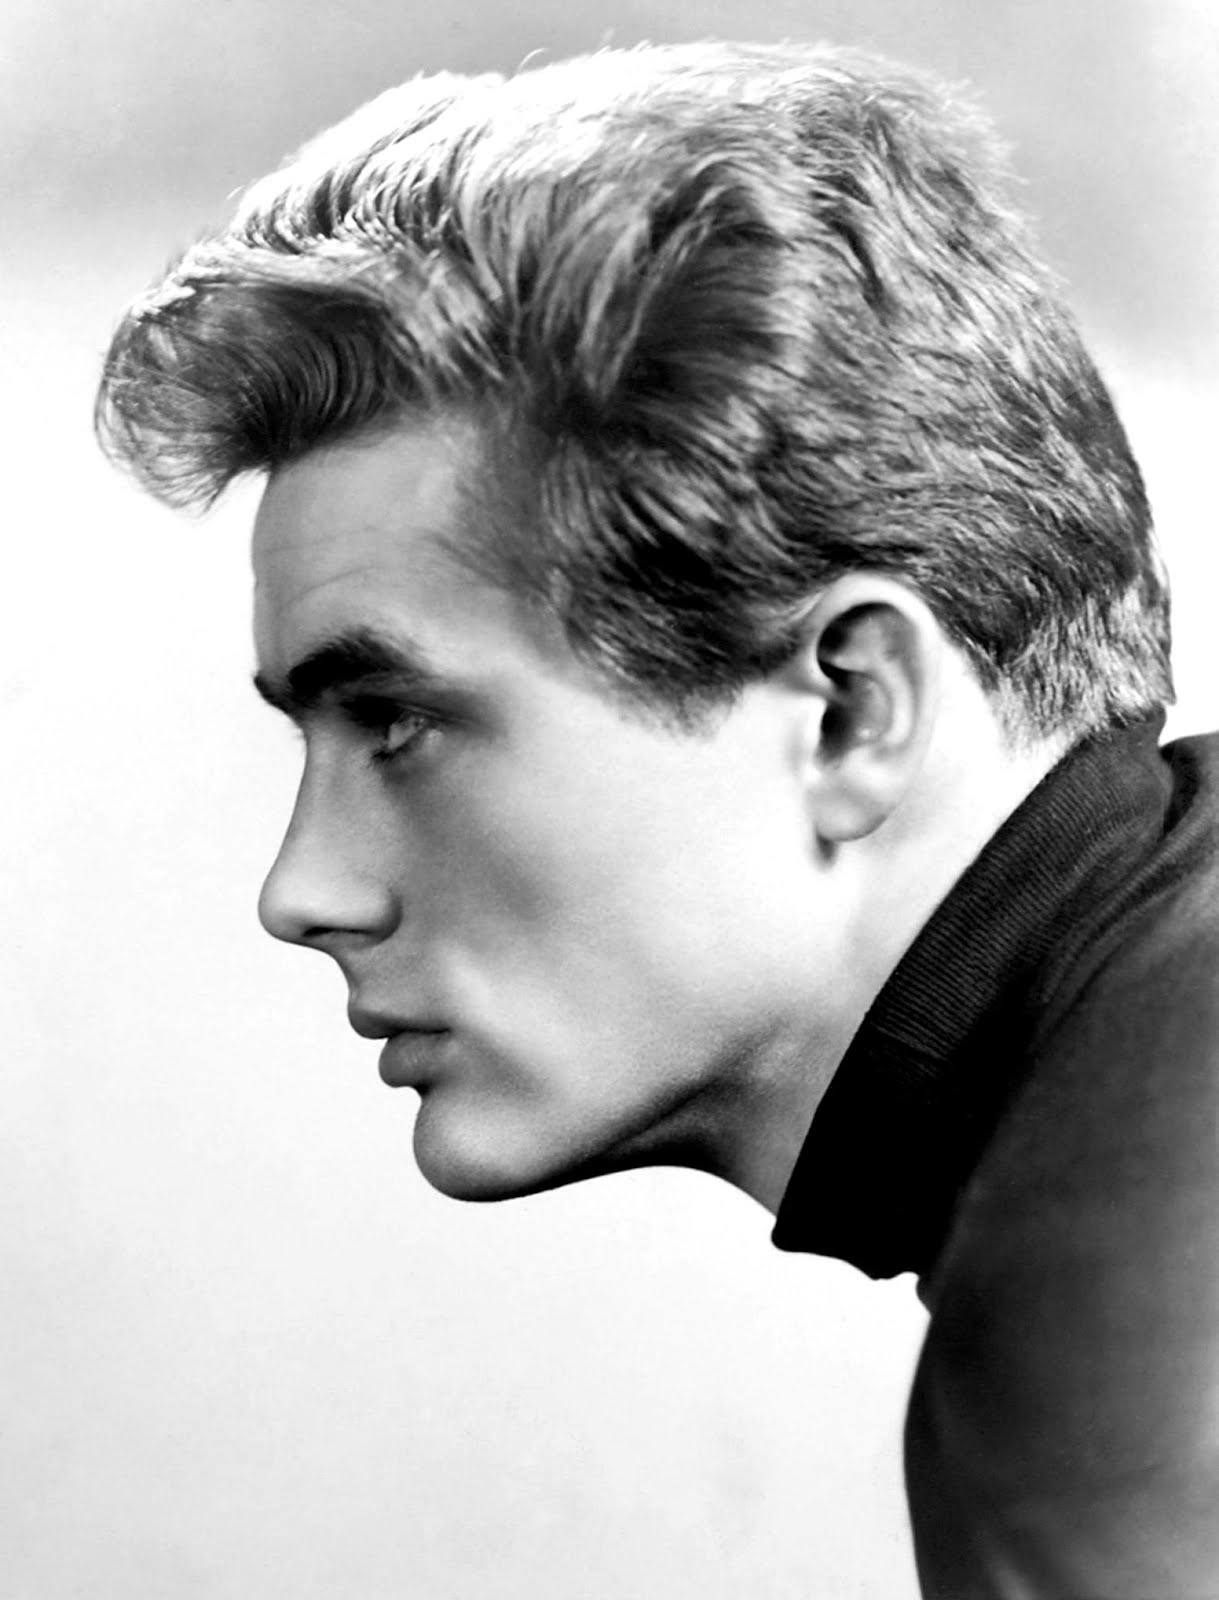 James Dean Ursula Andress James Dean Posted by Jake Ehrlich at 459 AM